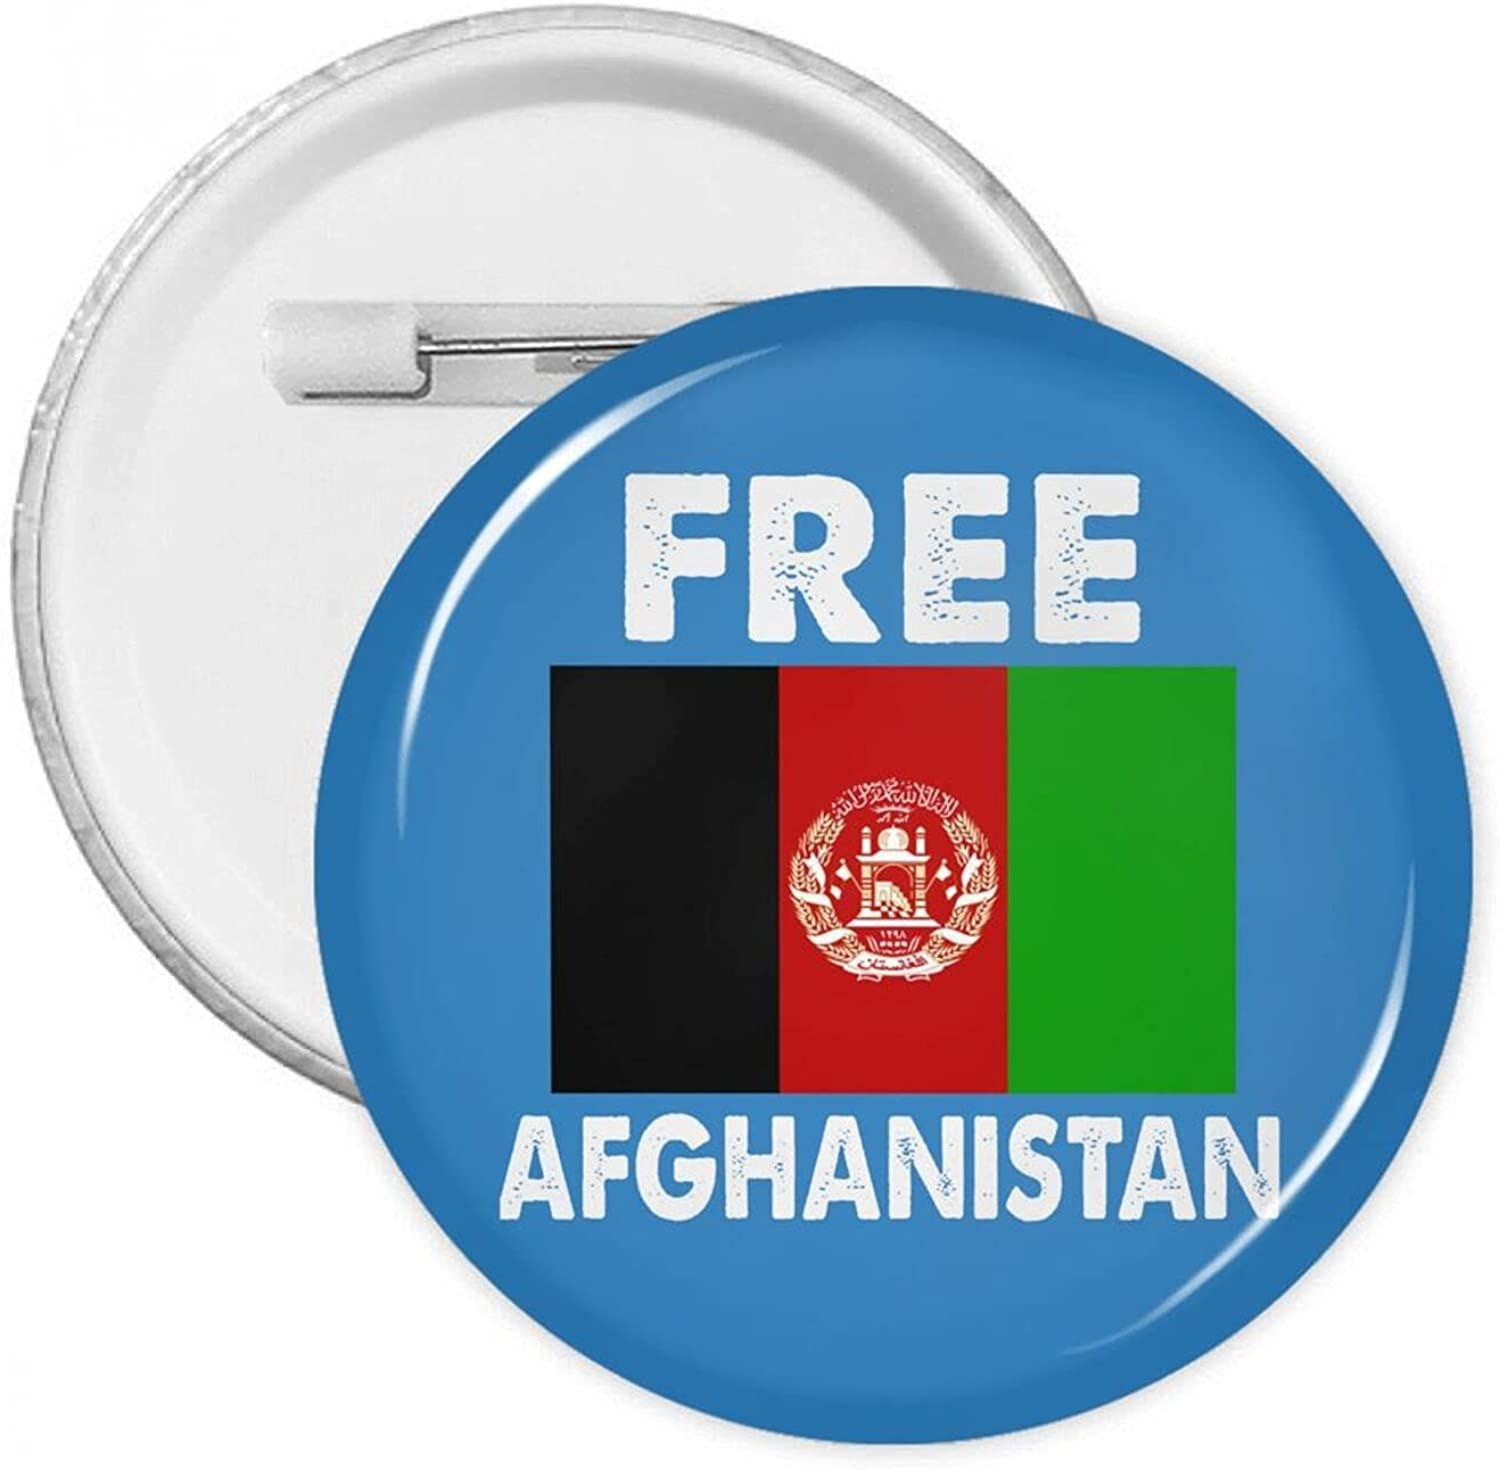 Free Beauty products Afghanistan Round Button Pins With Badges safety